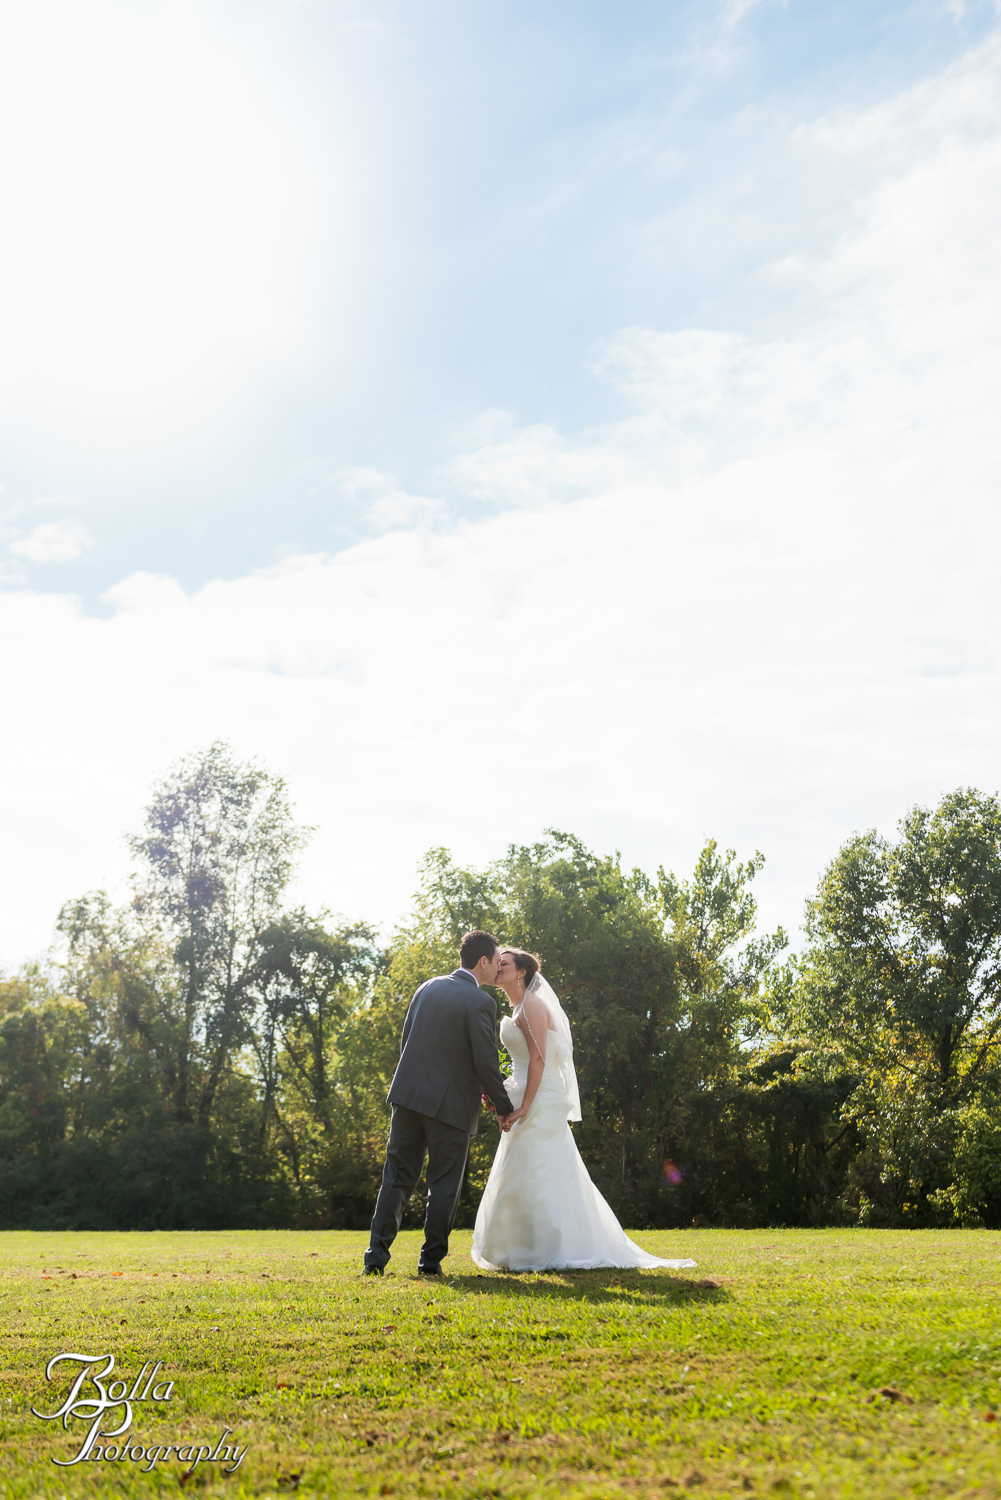 Bolla_Photography_St_Louis_wedding_photographer-0346.jpg